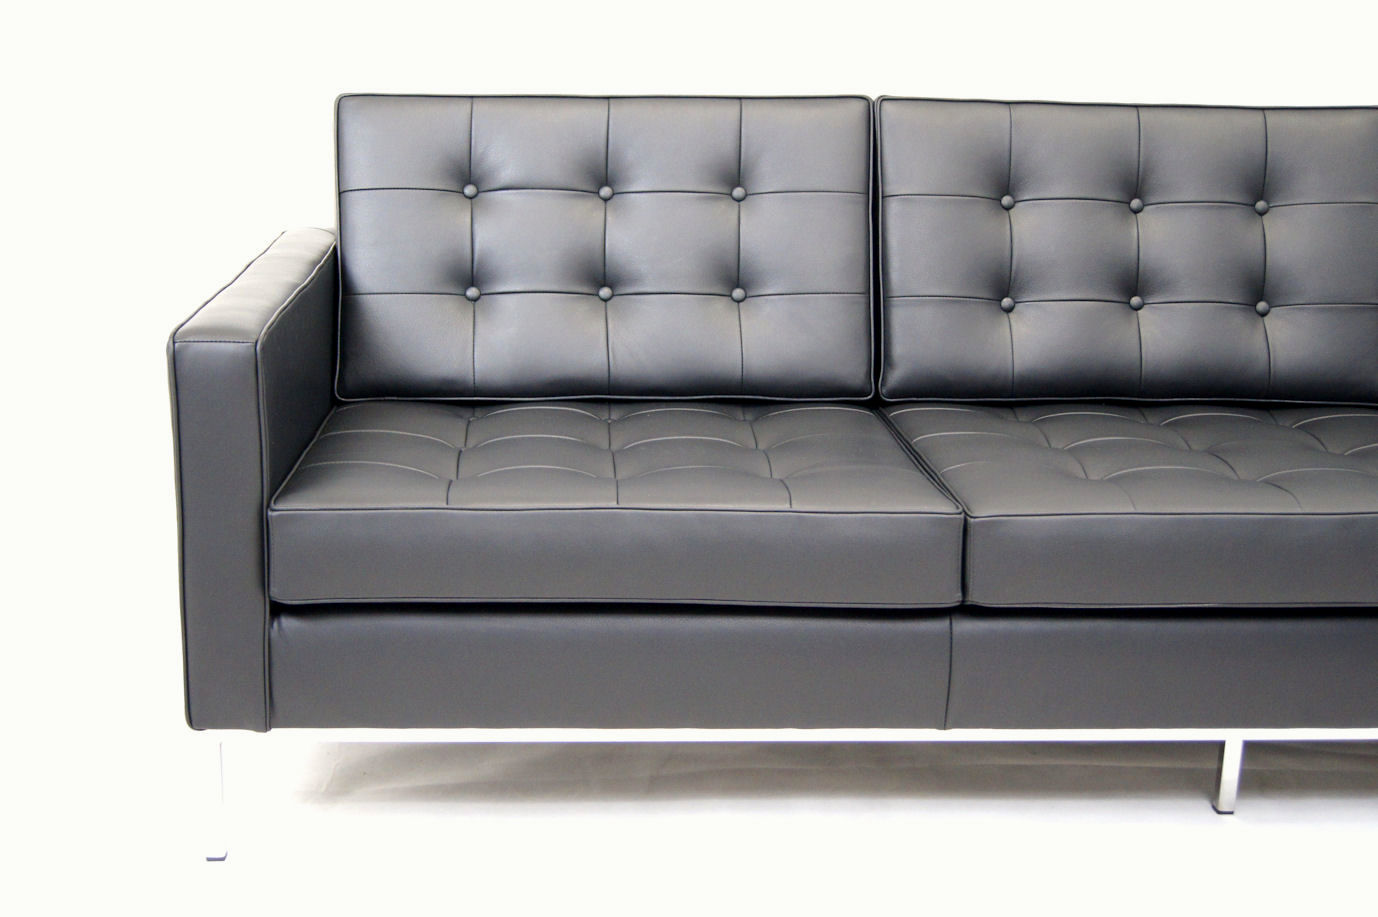 cool florence knoll sofa gallery-Fantastic Florence Knoll sofa Photo